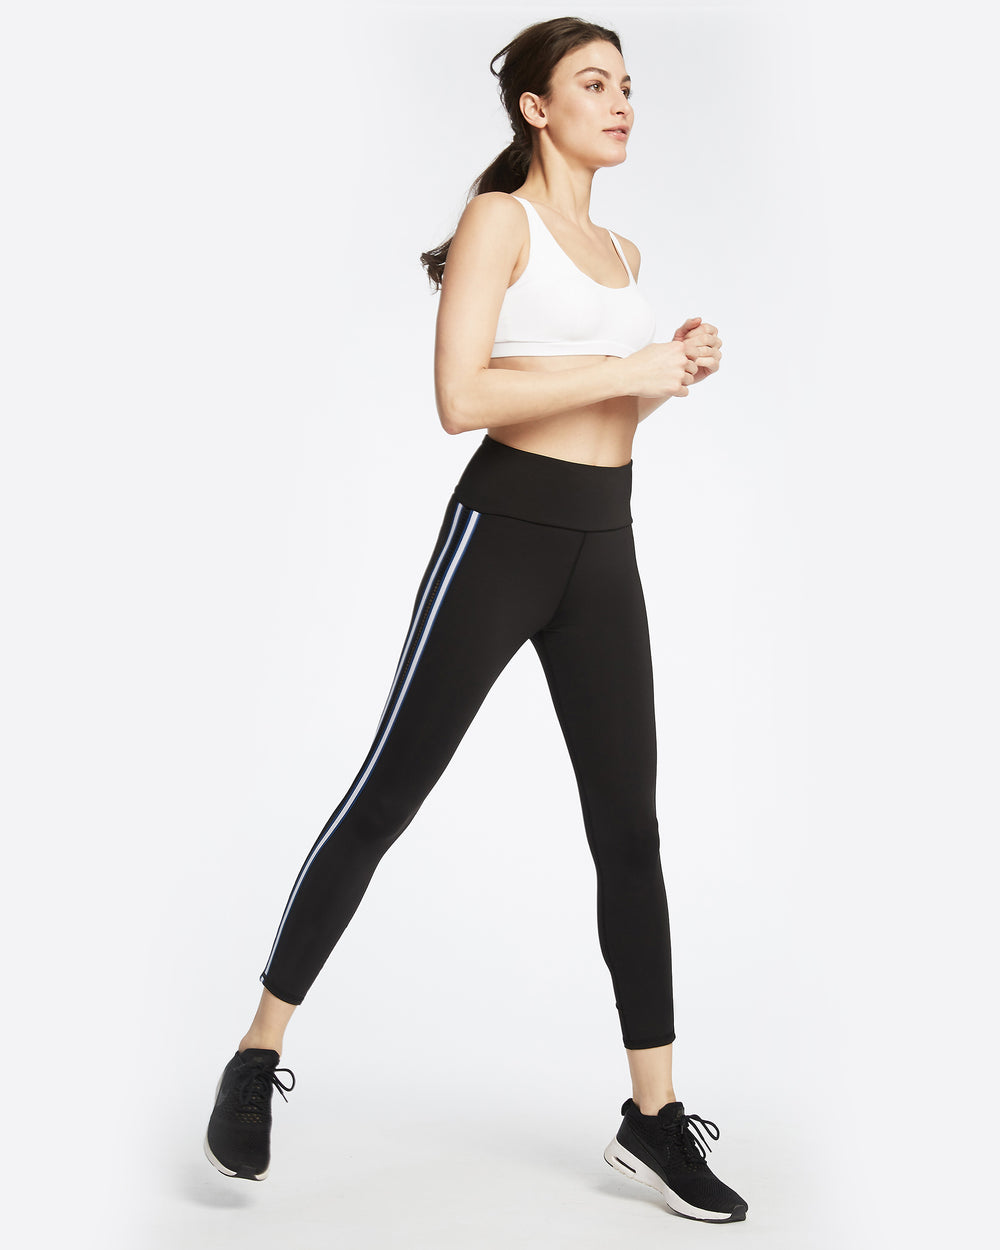 Le Mans High Waisted Legging - Black/Adriatic Blue